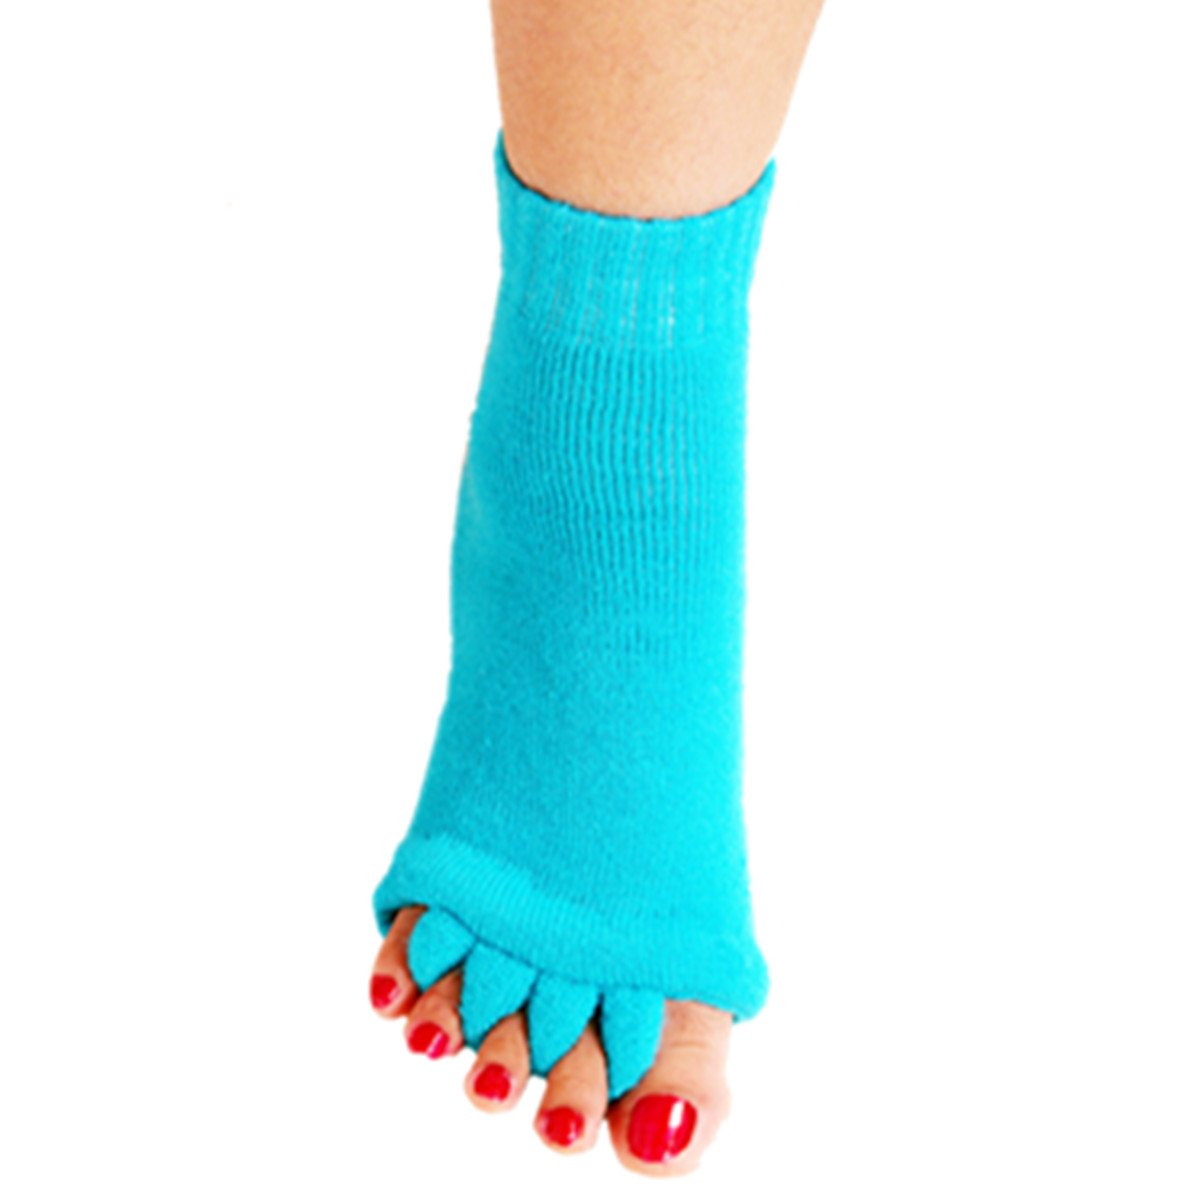 1 Pair Yoga GYM Massage Five Toe Separator Socks Foot Alignment Pain Relief Hot (One Size, A-Sky Blue)